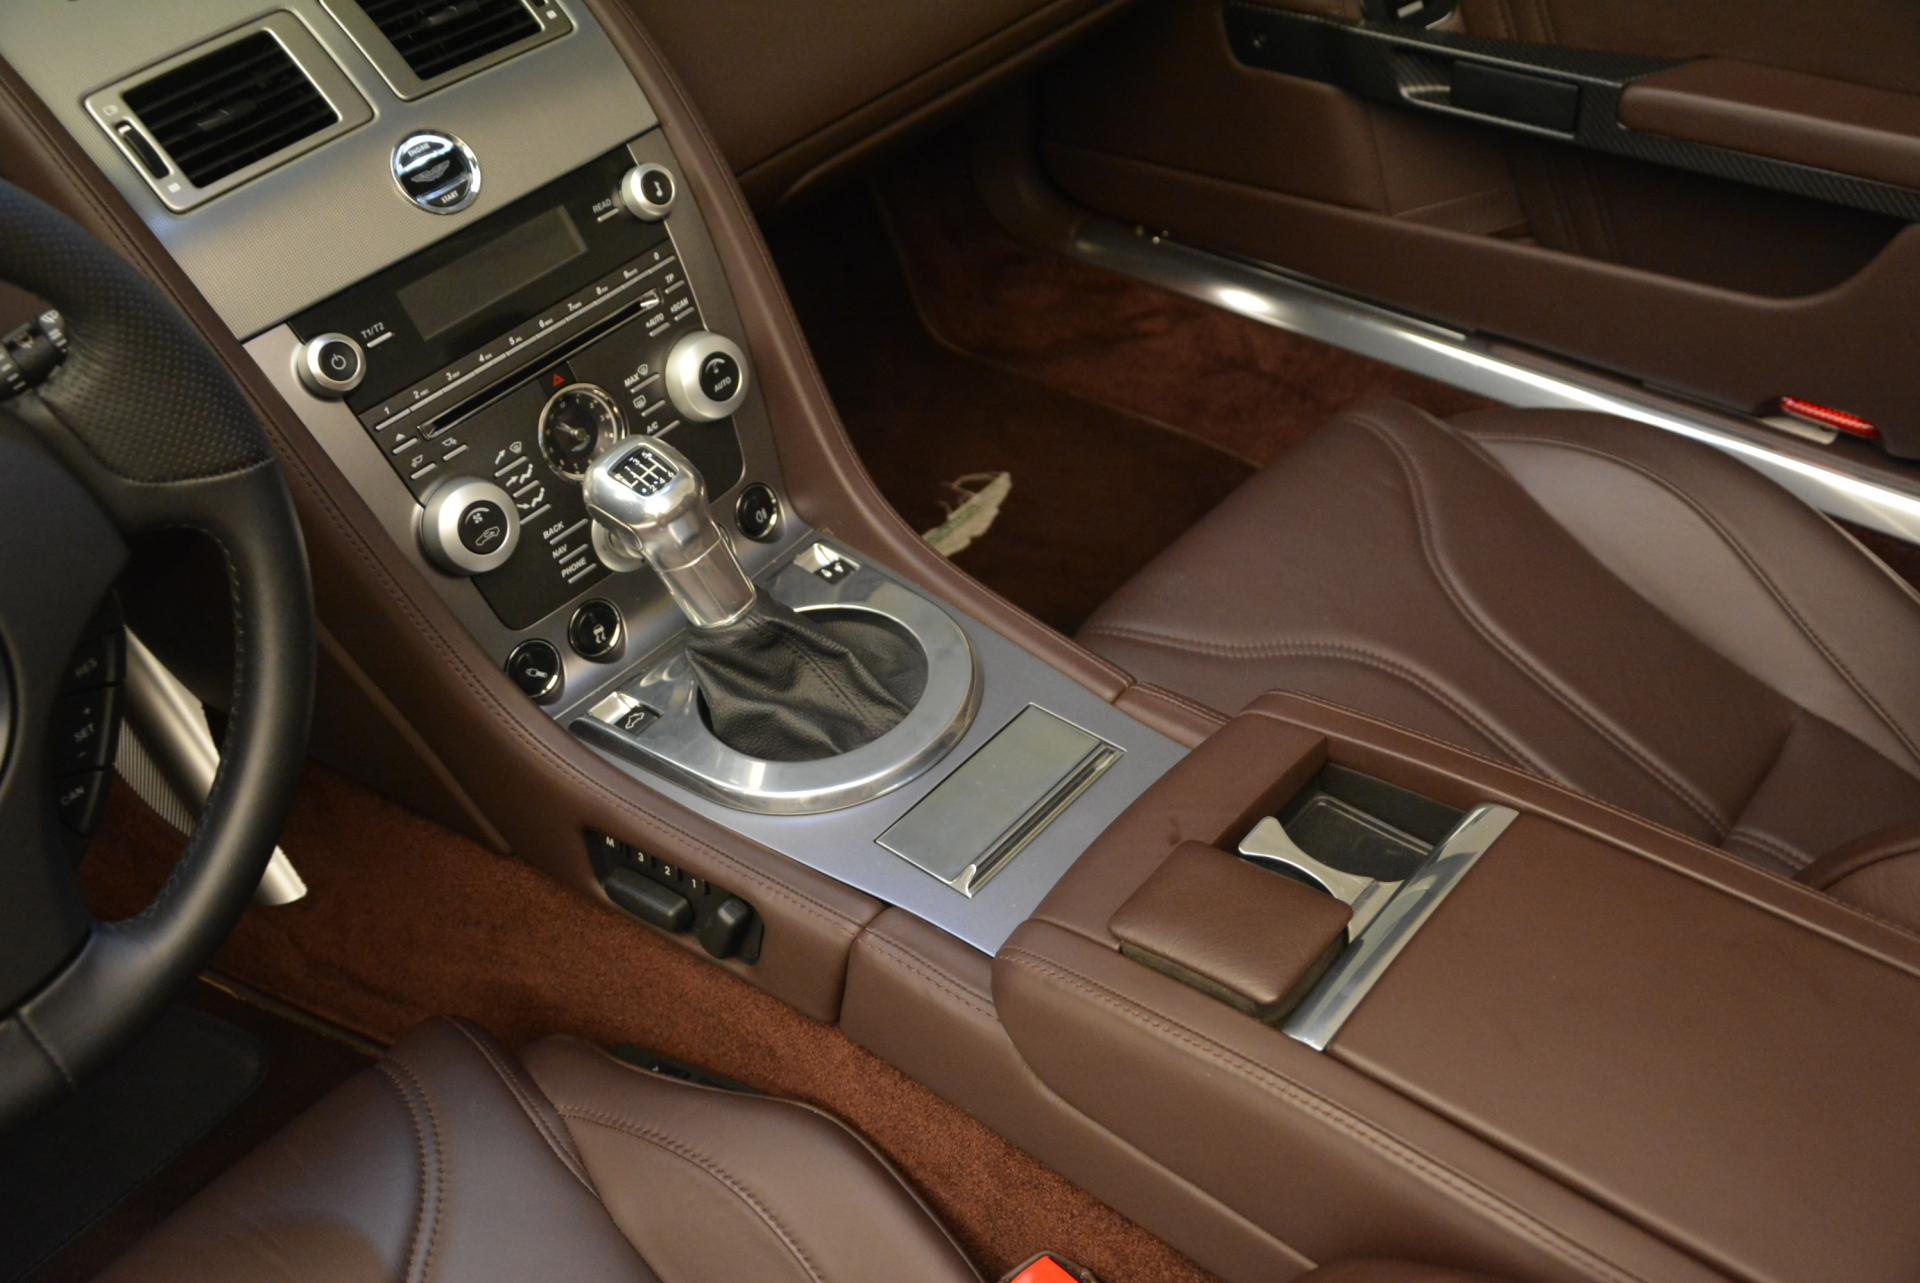 Used 2010 Aston Martin DBS Volante For Sale In Westport, CT 87_p37